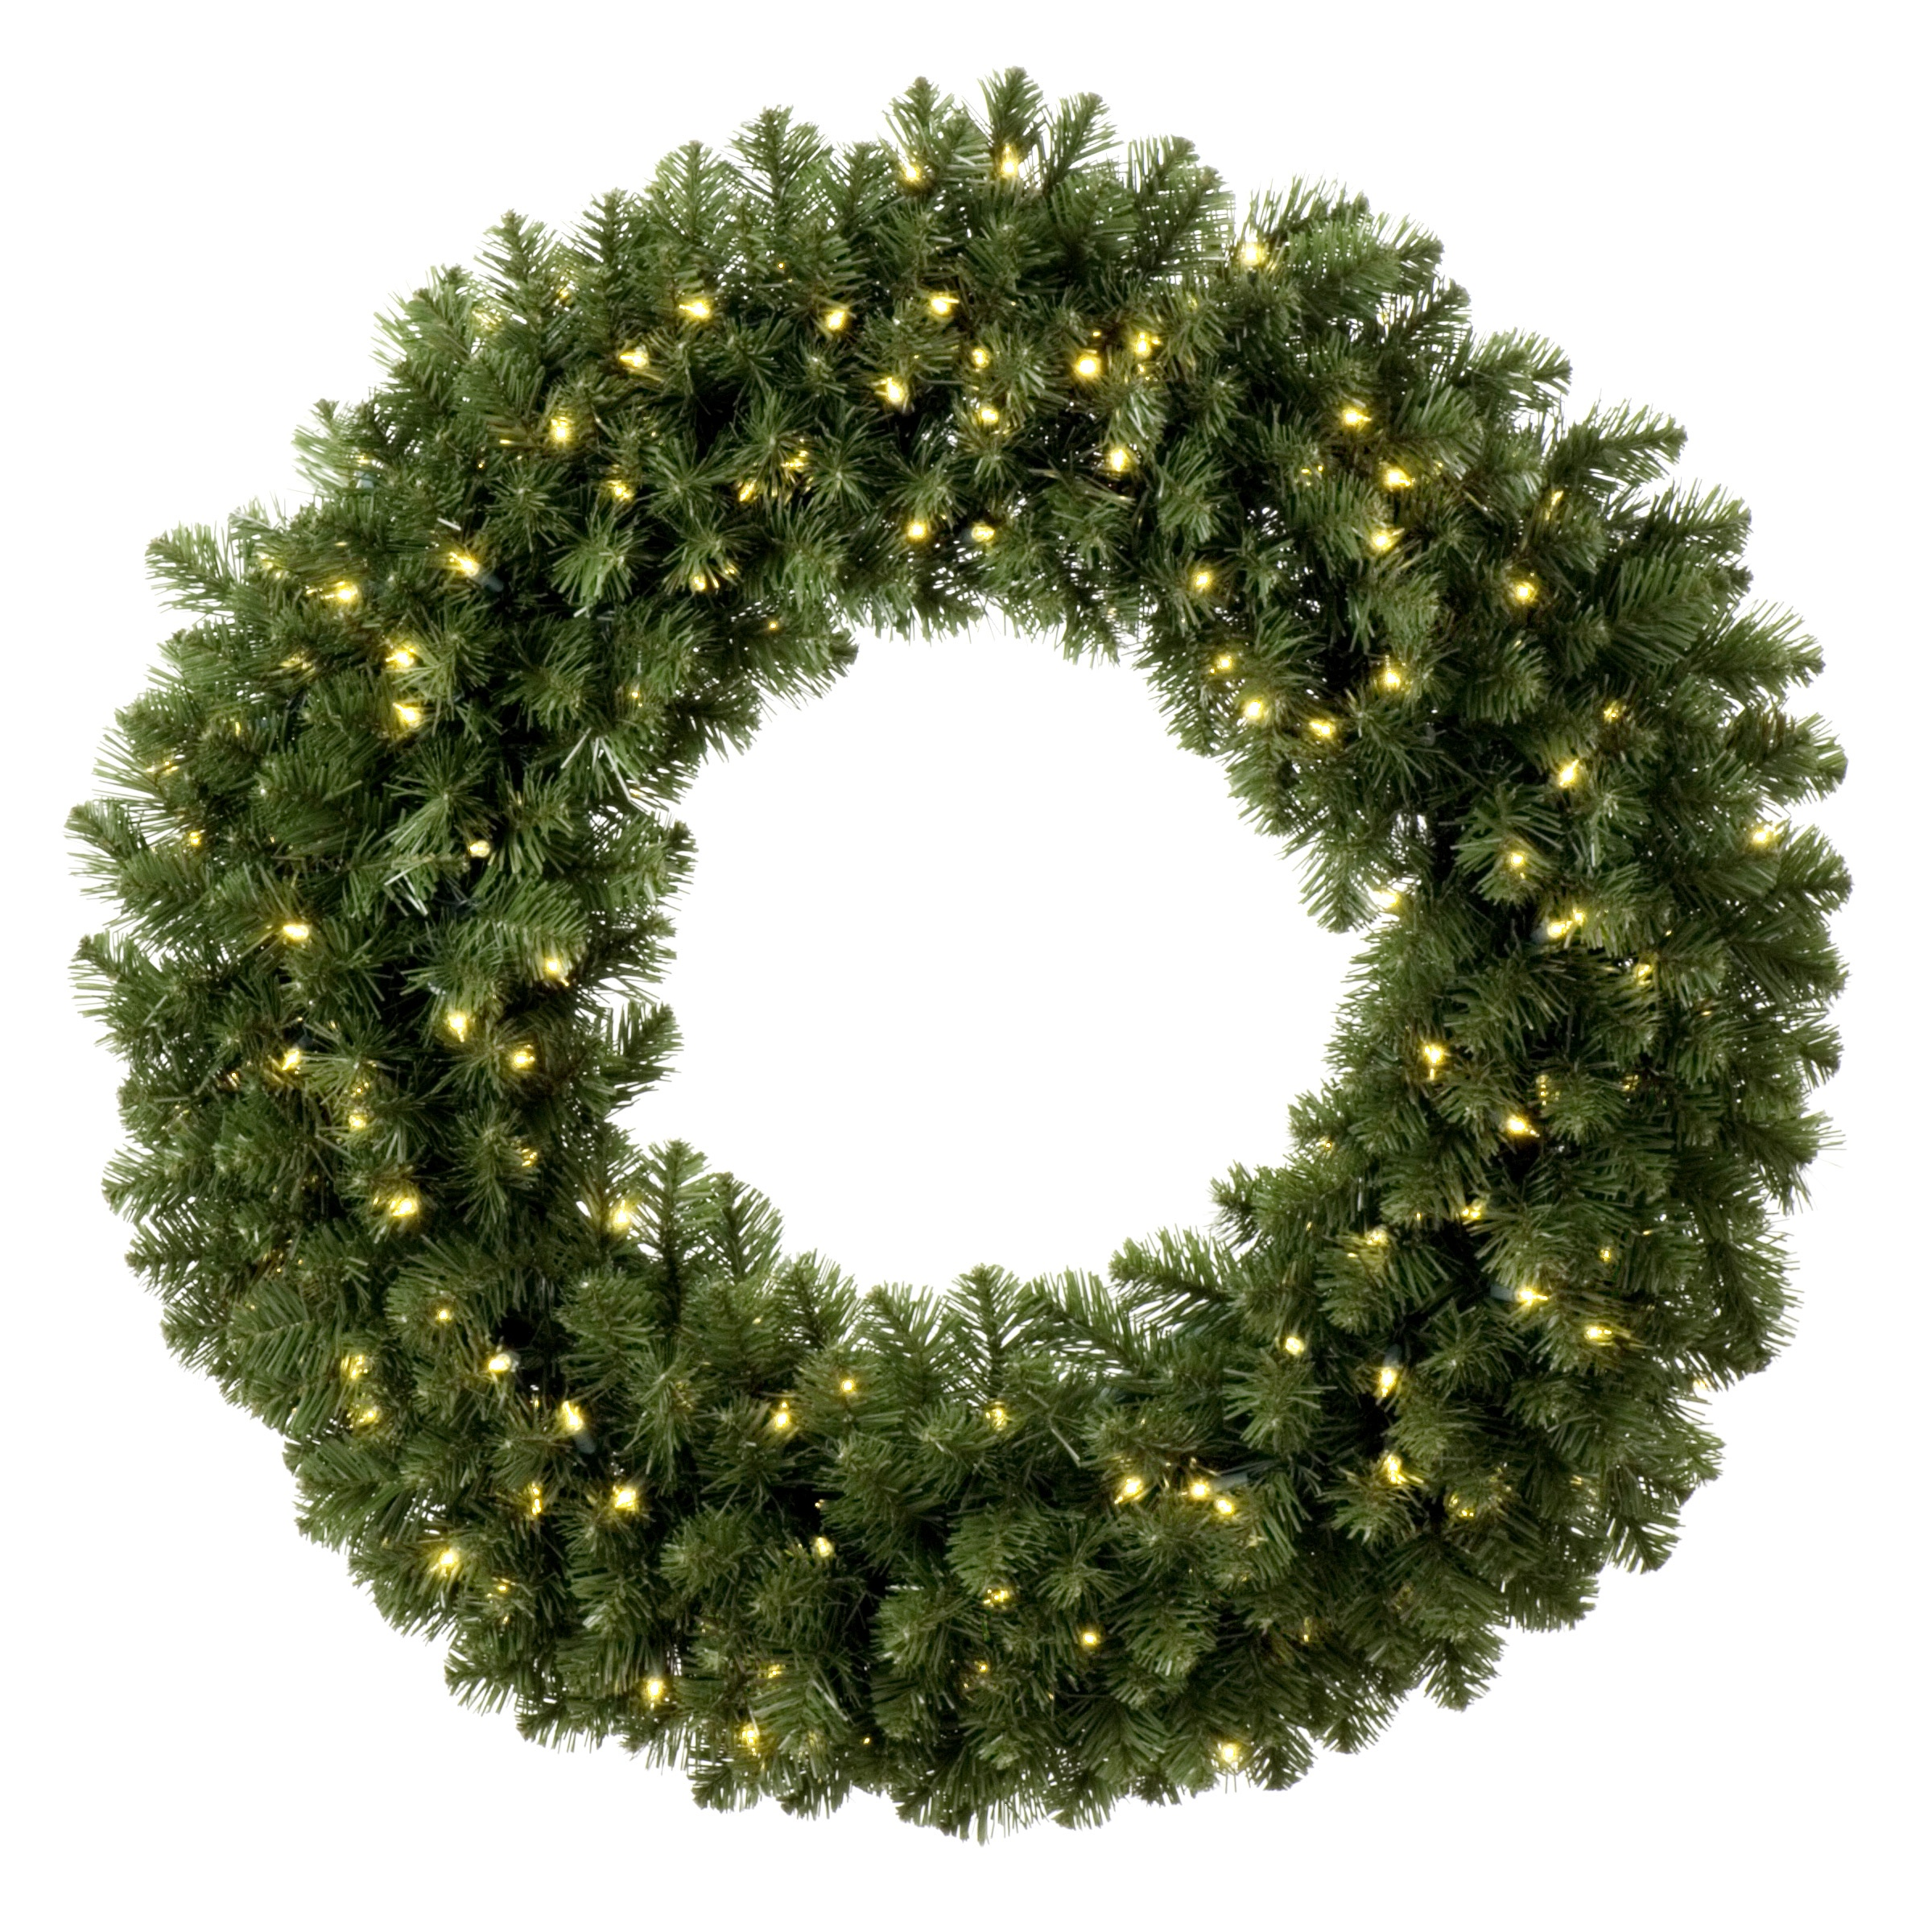 Artificial Christmas Wreaths - Sequoia Fir Prelit Commercial Christmas Wreath, Clear Lights